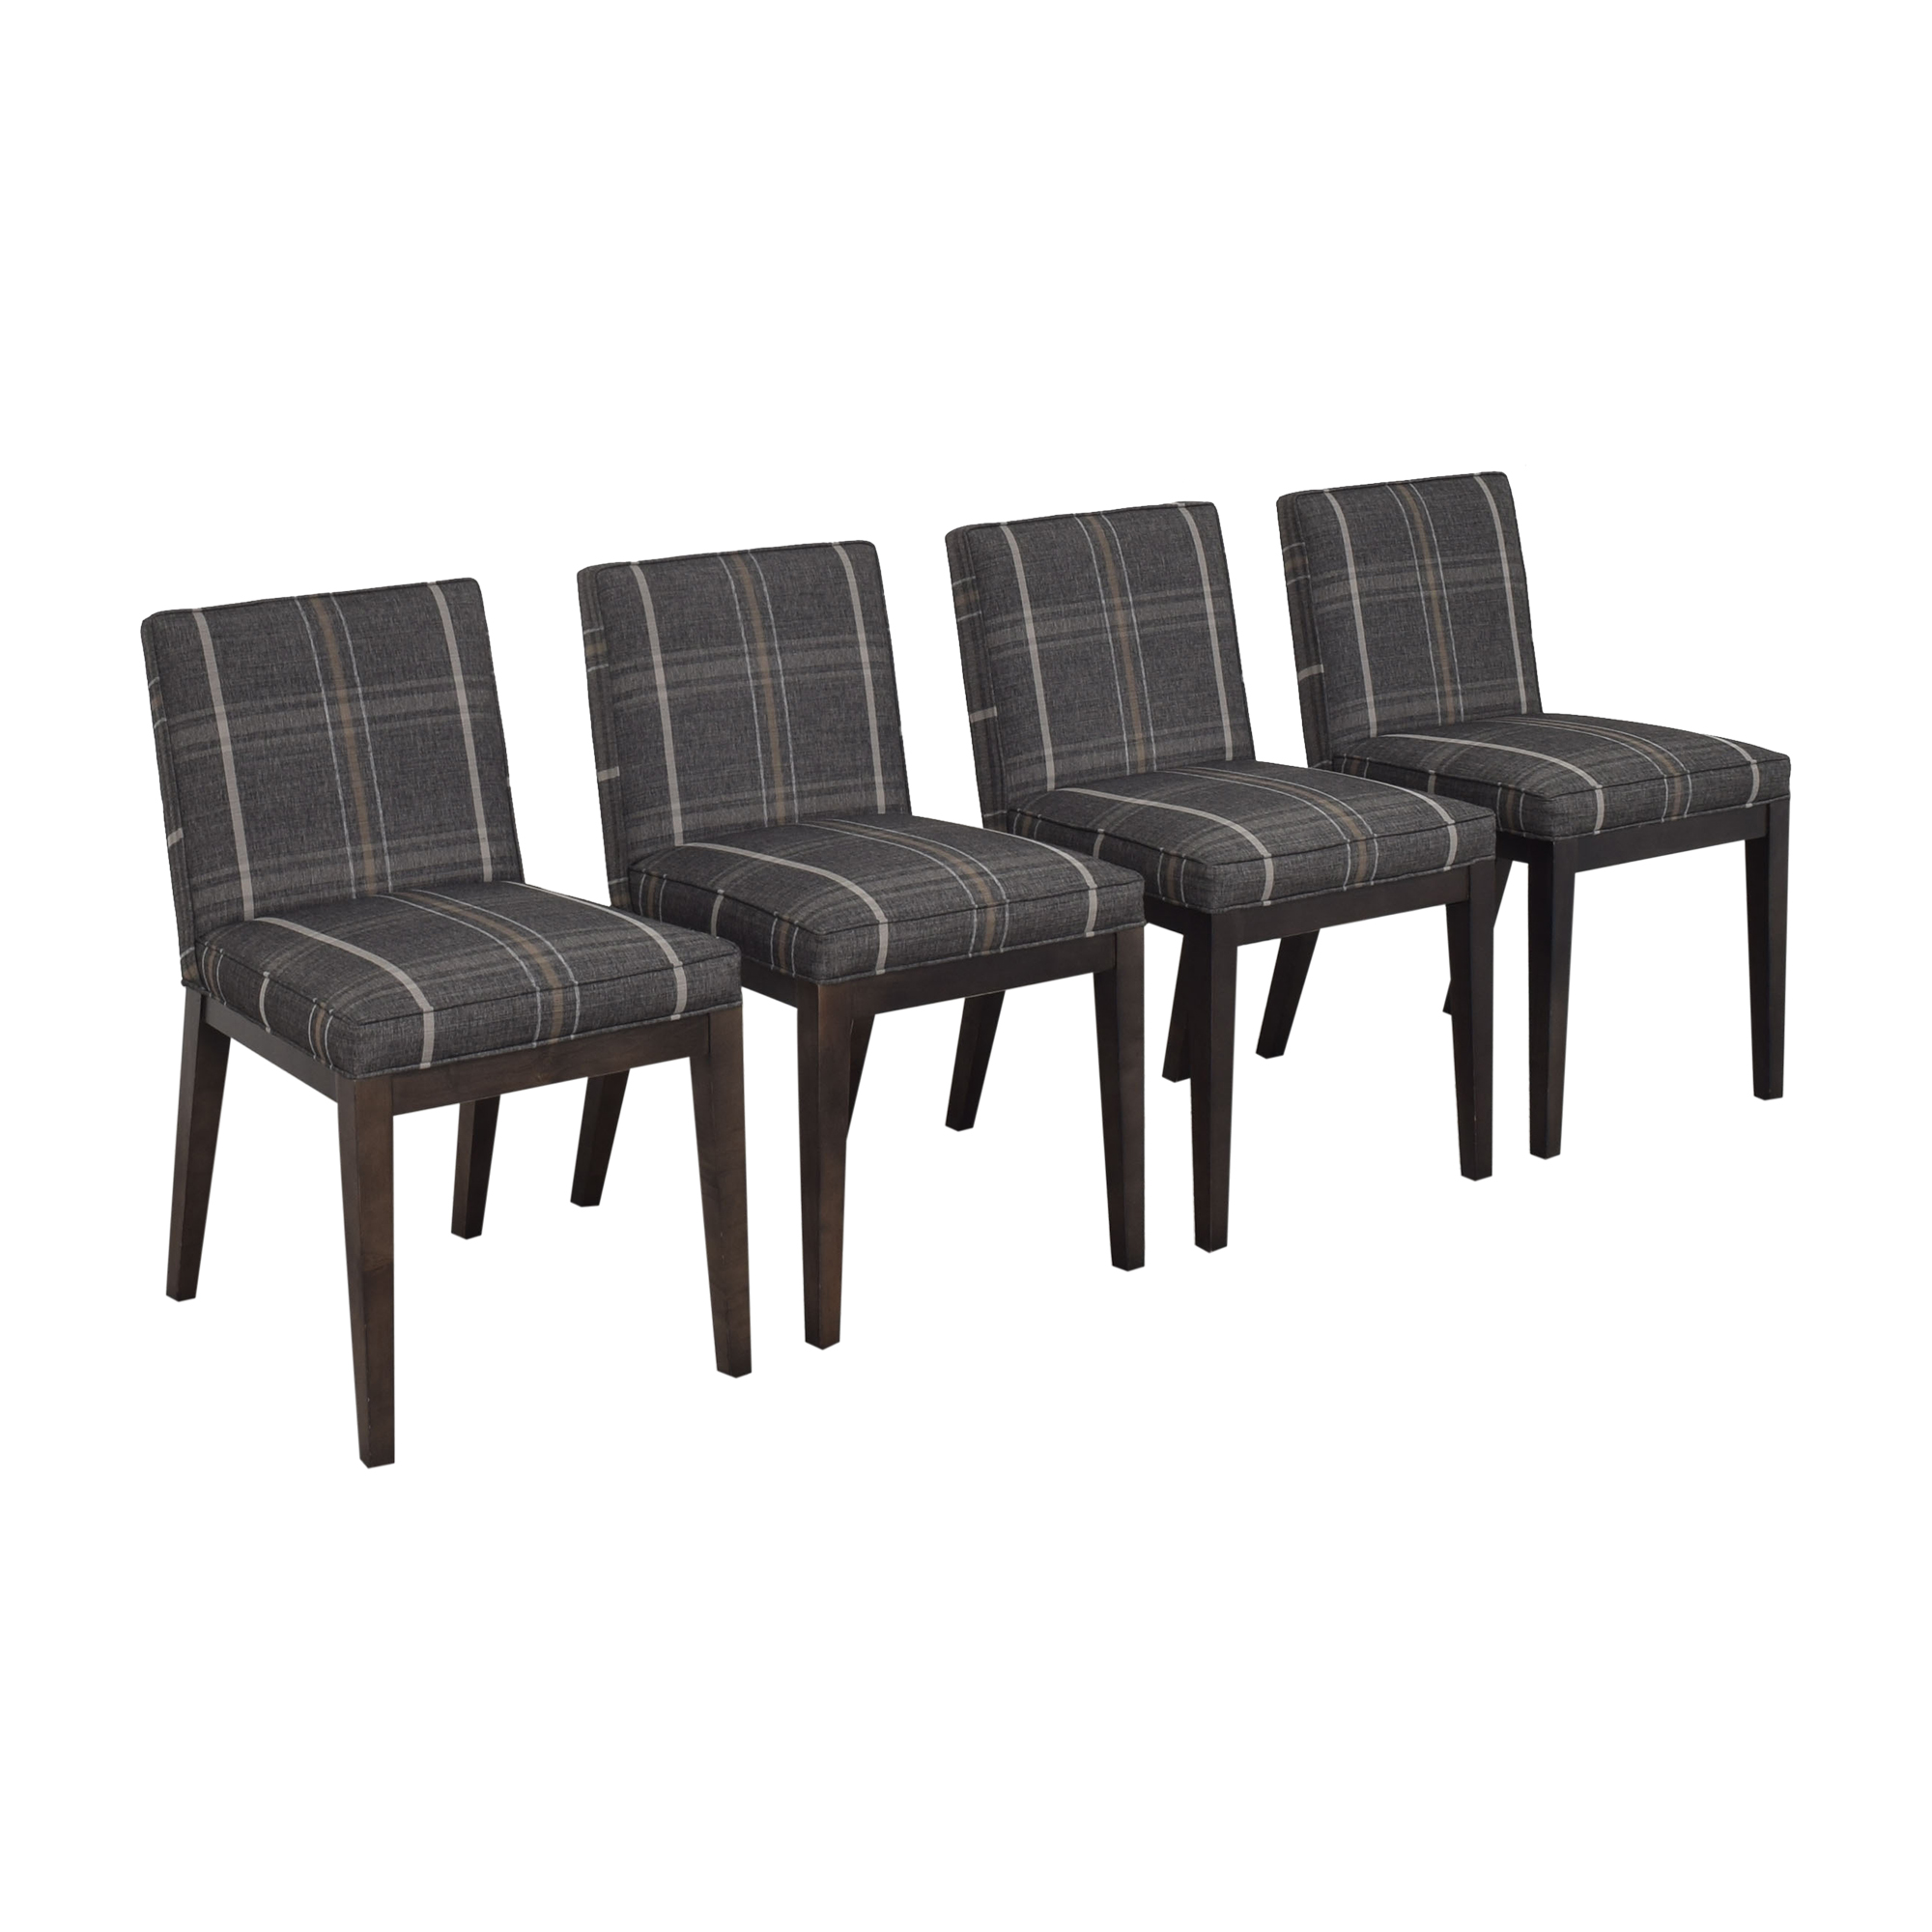 buy Room & Board Ansel Plaid Dining Chairs Room & Board Chairs